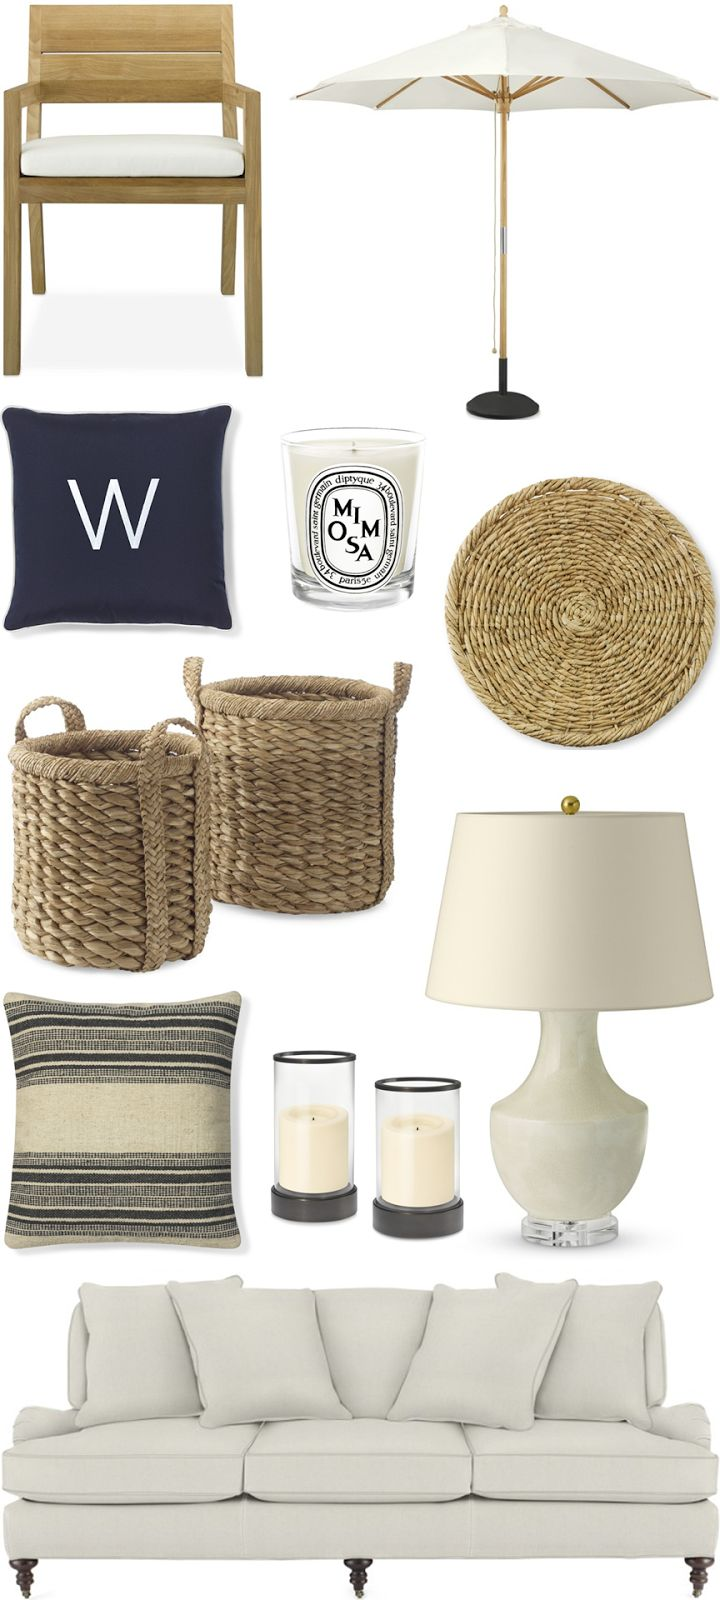 CHIC COASTAL LIVING: Beach House: GET THE LOOK @Williams-Sonoma Home